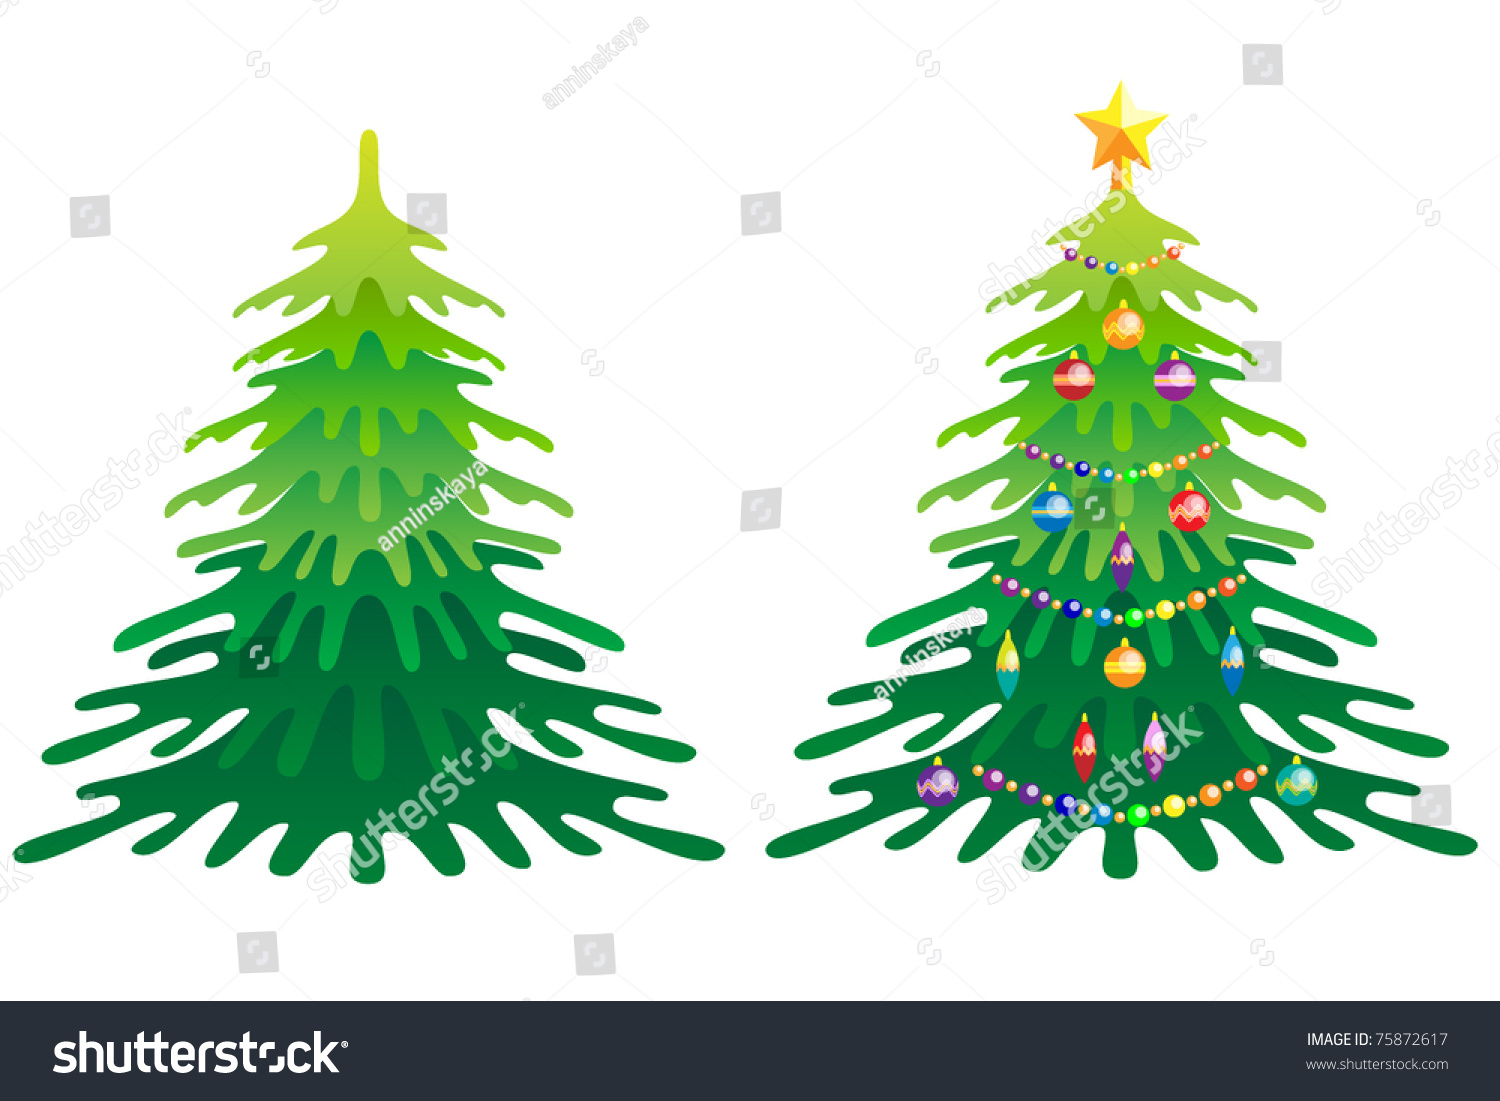 Christmas Tree Without Christmas Decorations And With